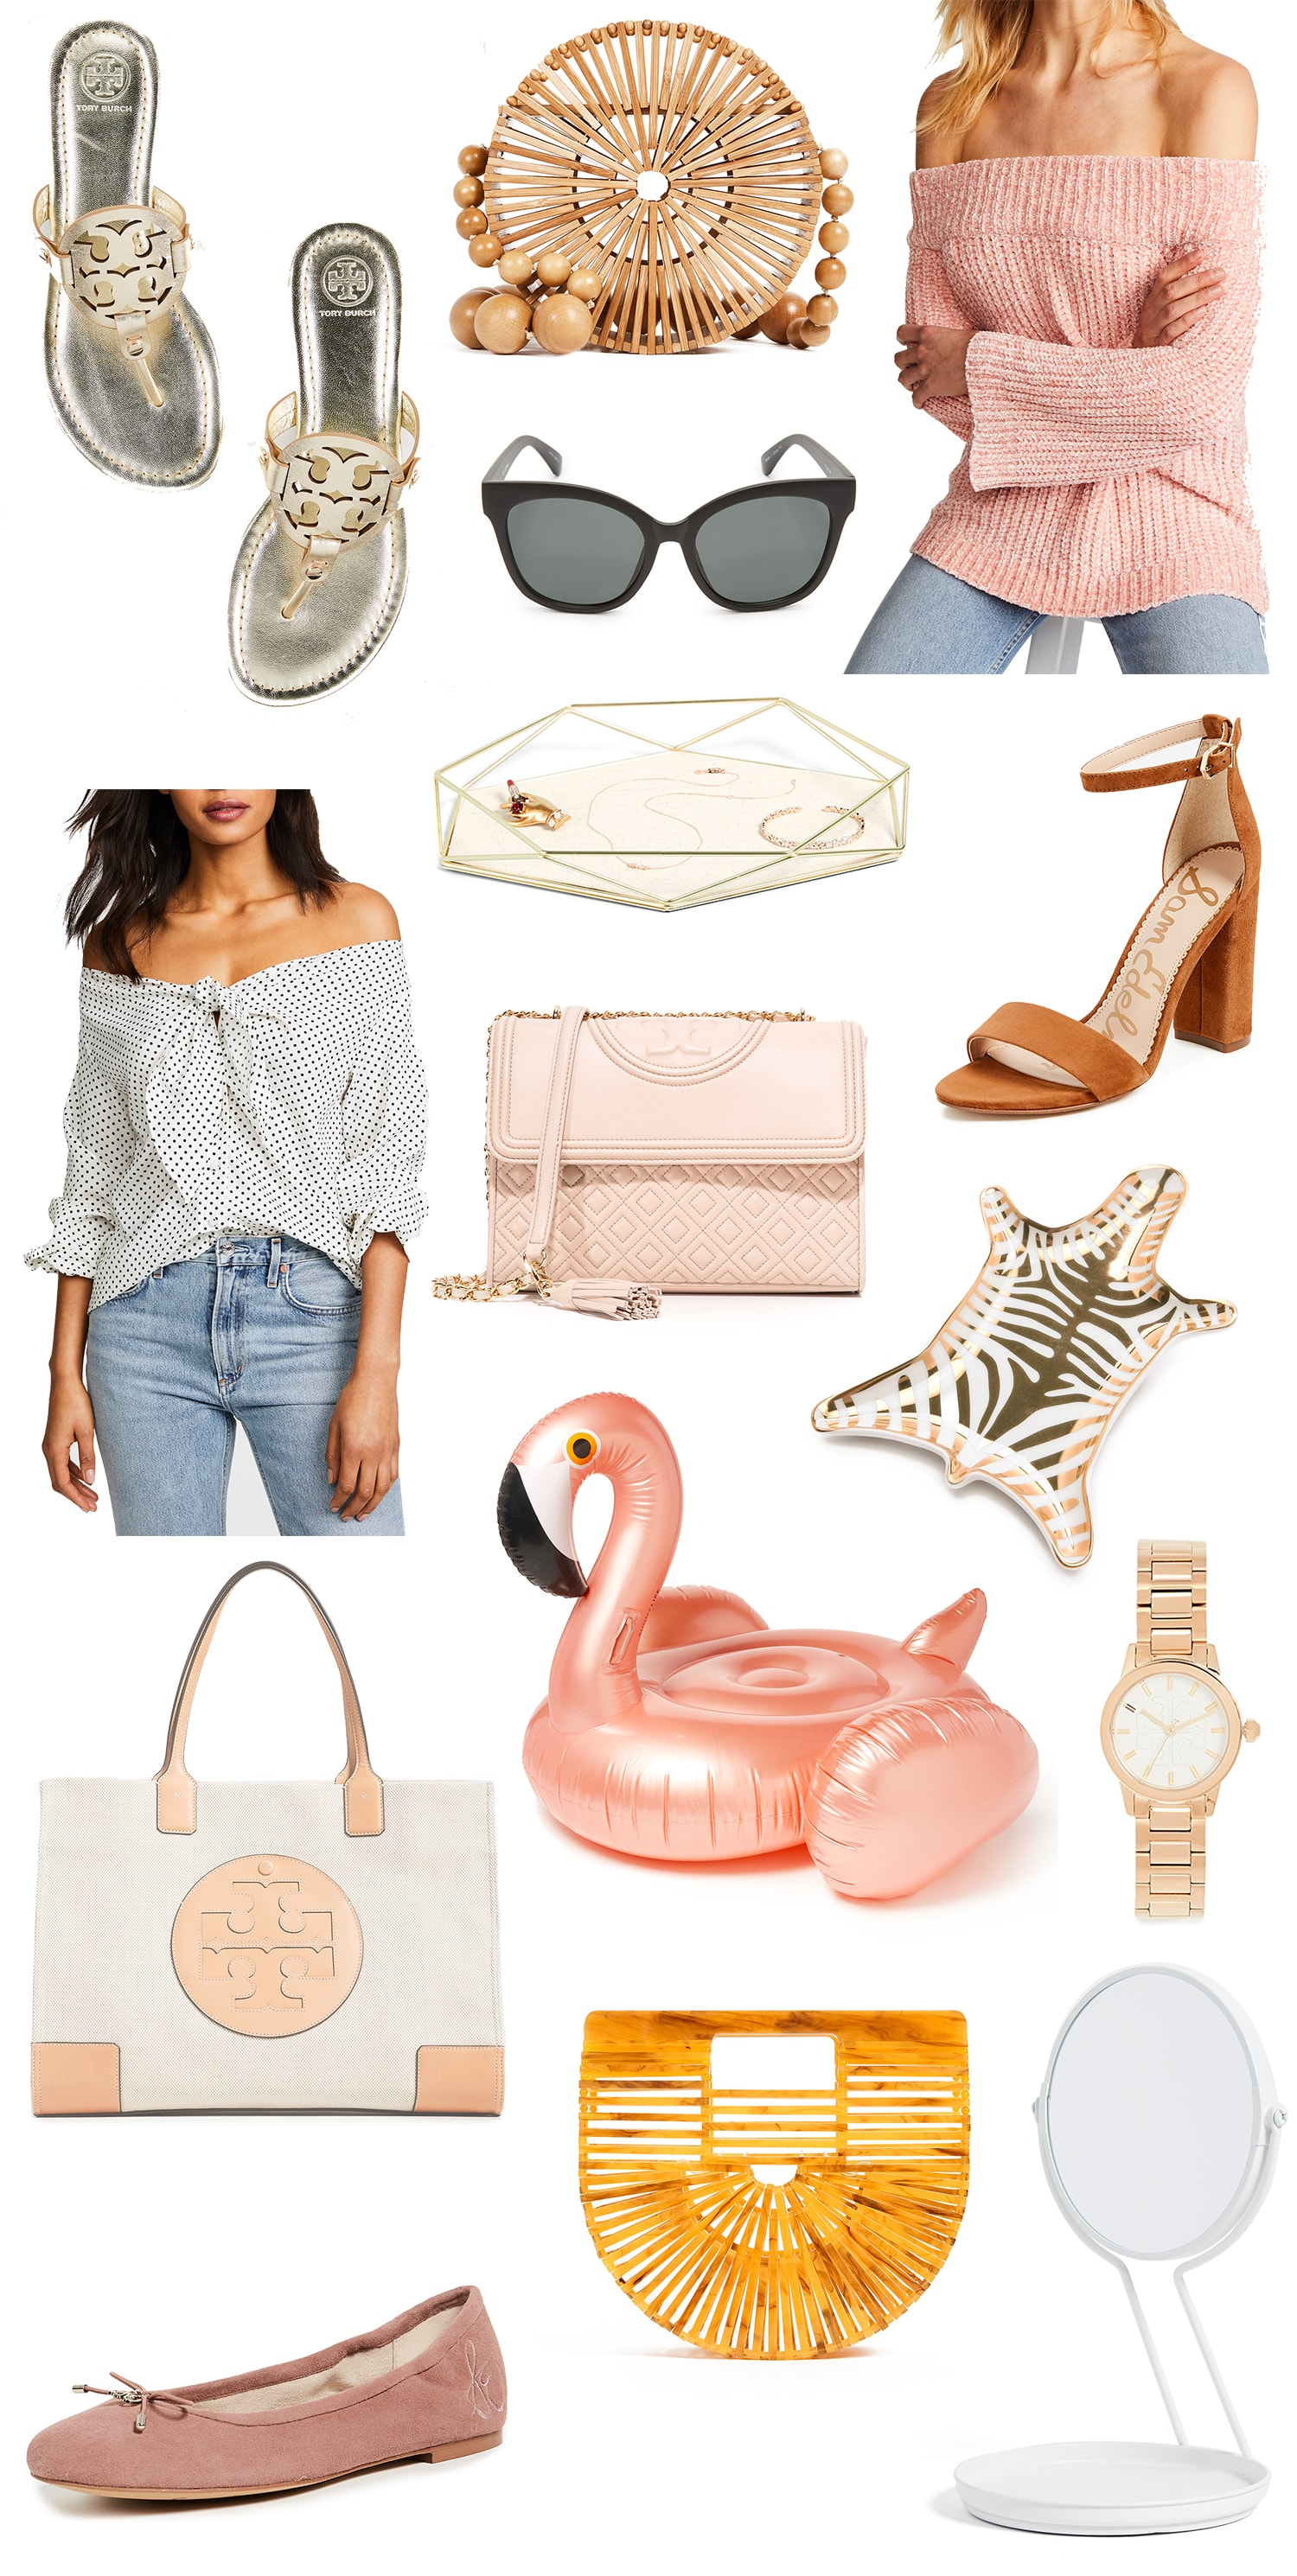 best-of-the-shopbop-sale-2018, gift ideas, cute gifts, shopbop